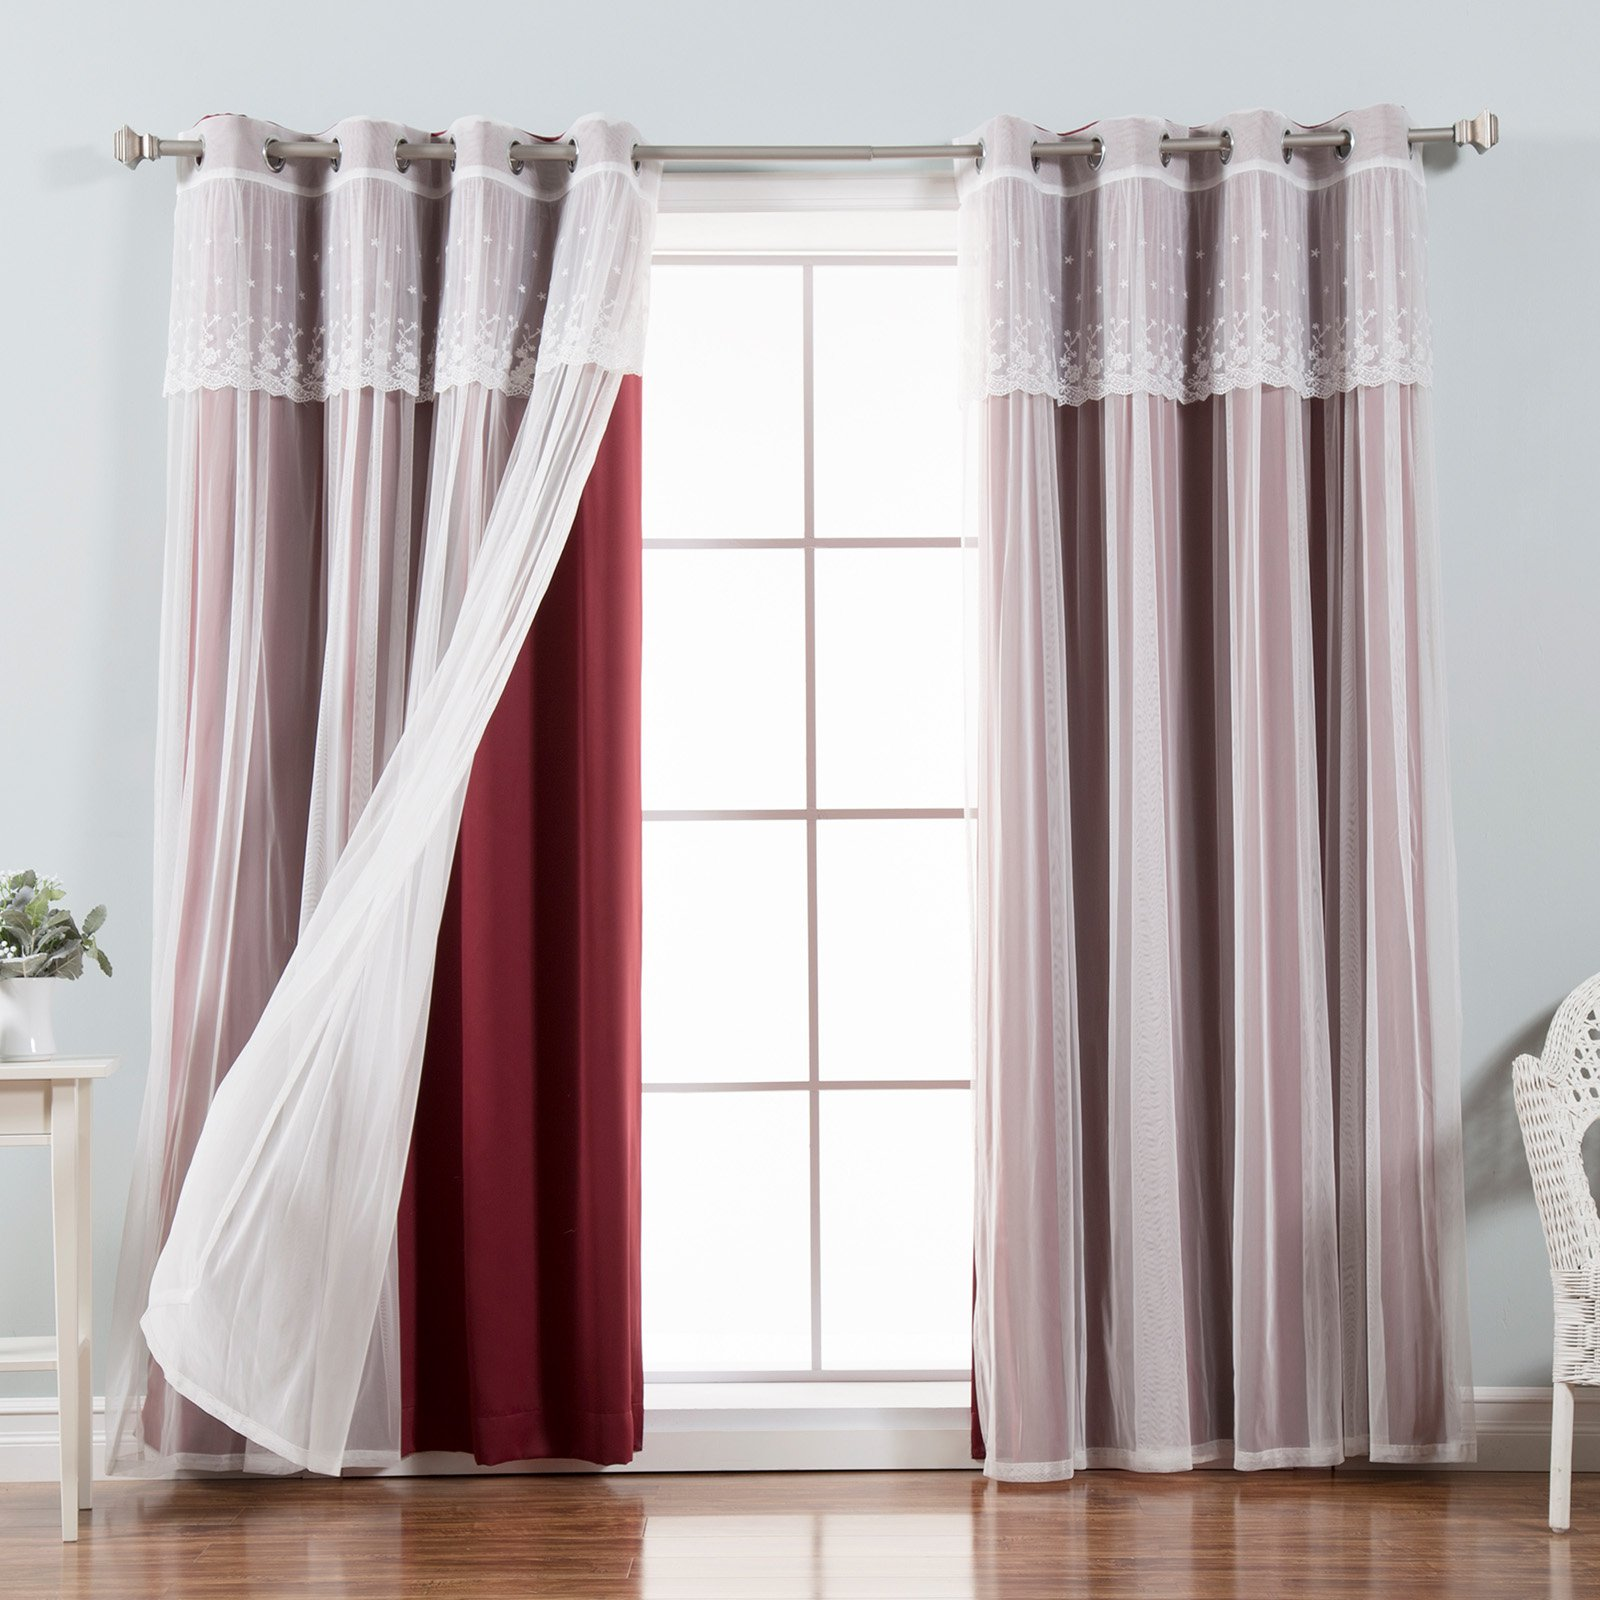 Best Home Fashion Mix ; Match Tulle Blackout Curtain with...